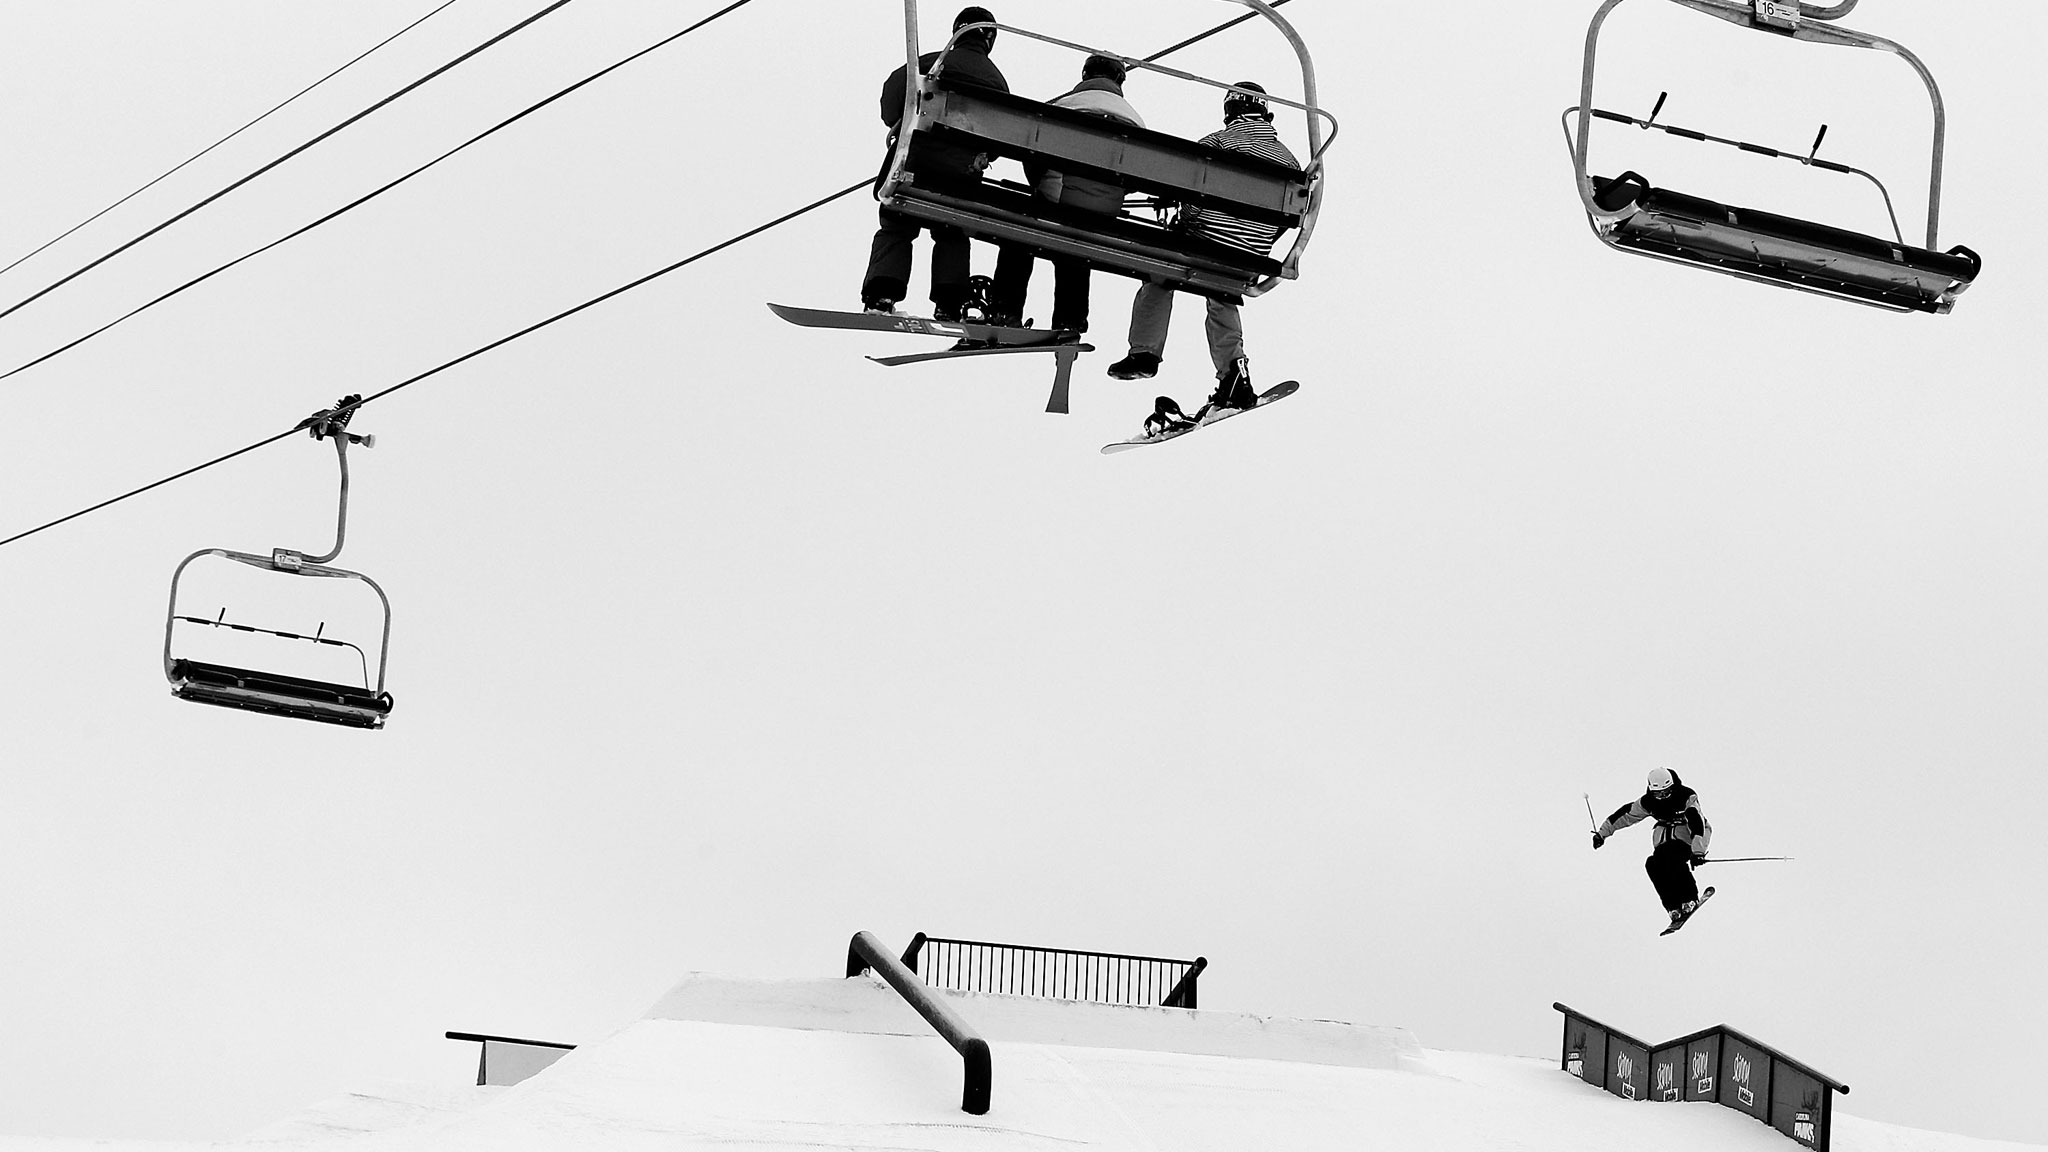 Noah Morrison competing in the FIS World Cup slopestyle contest Sunday in New Zealand.